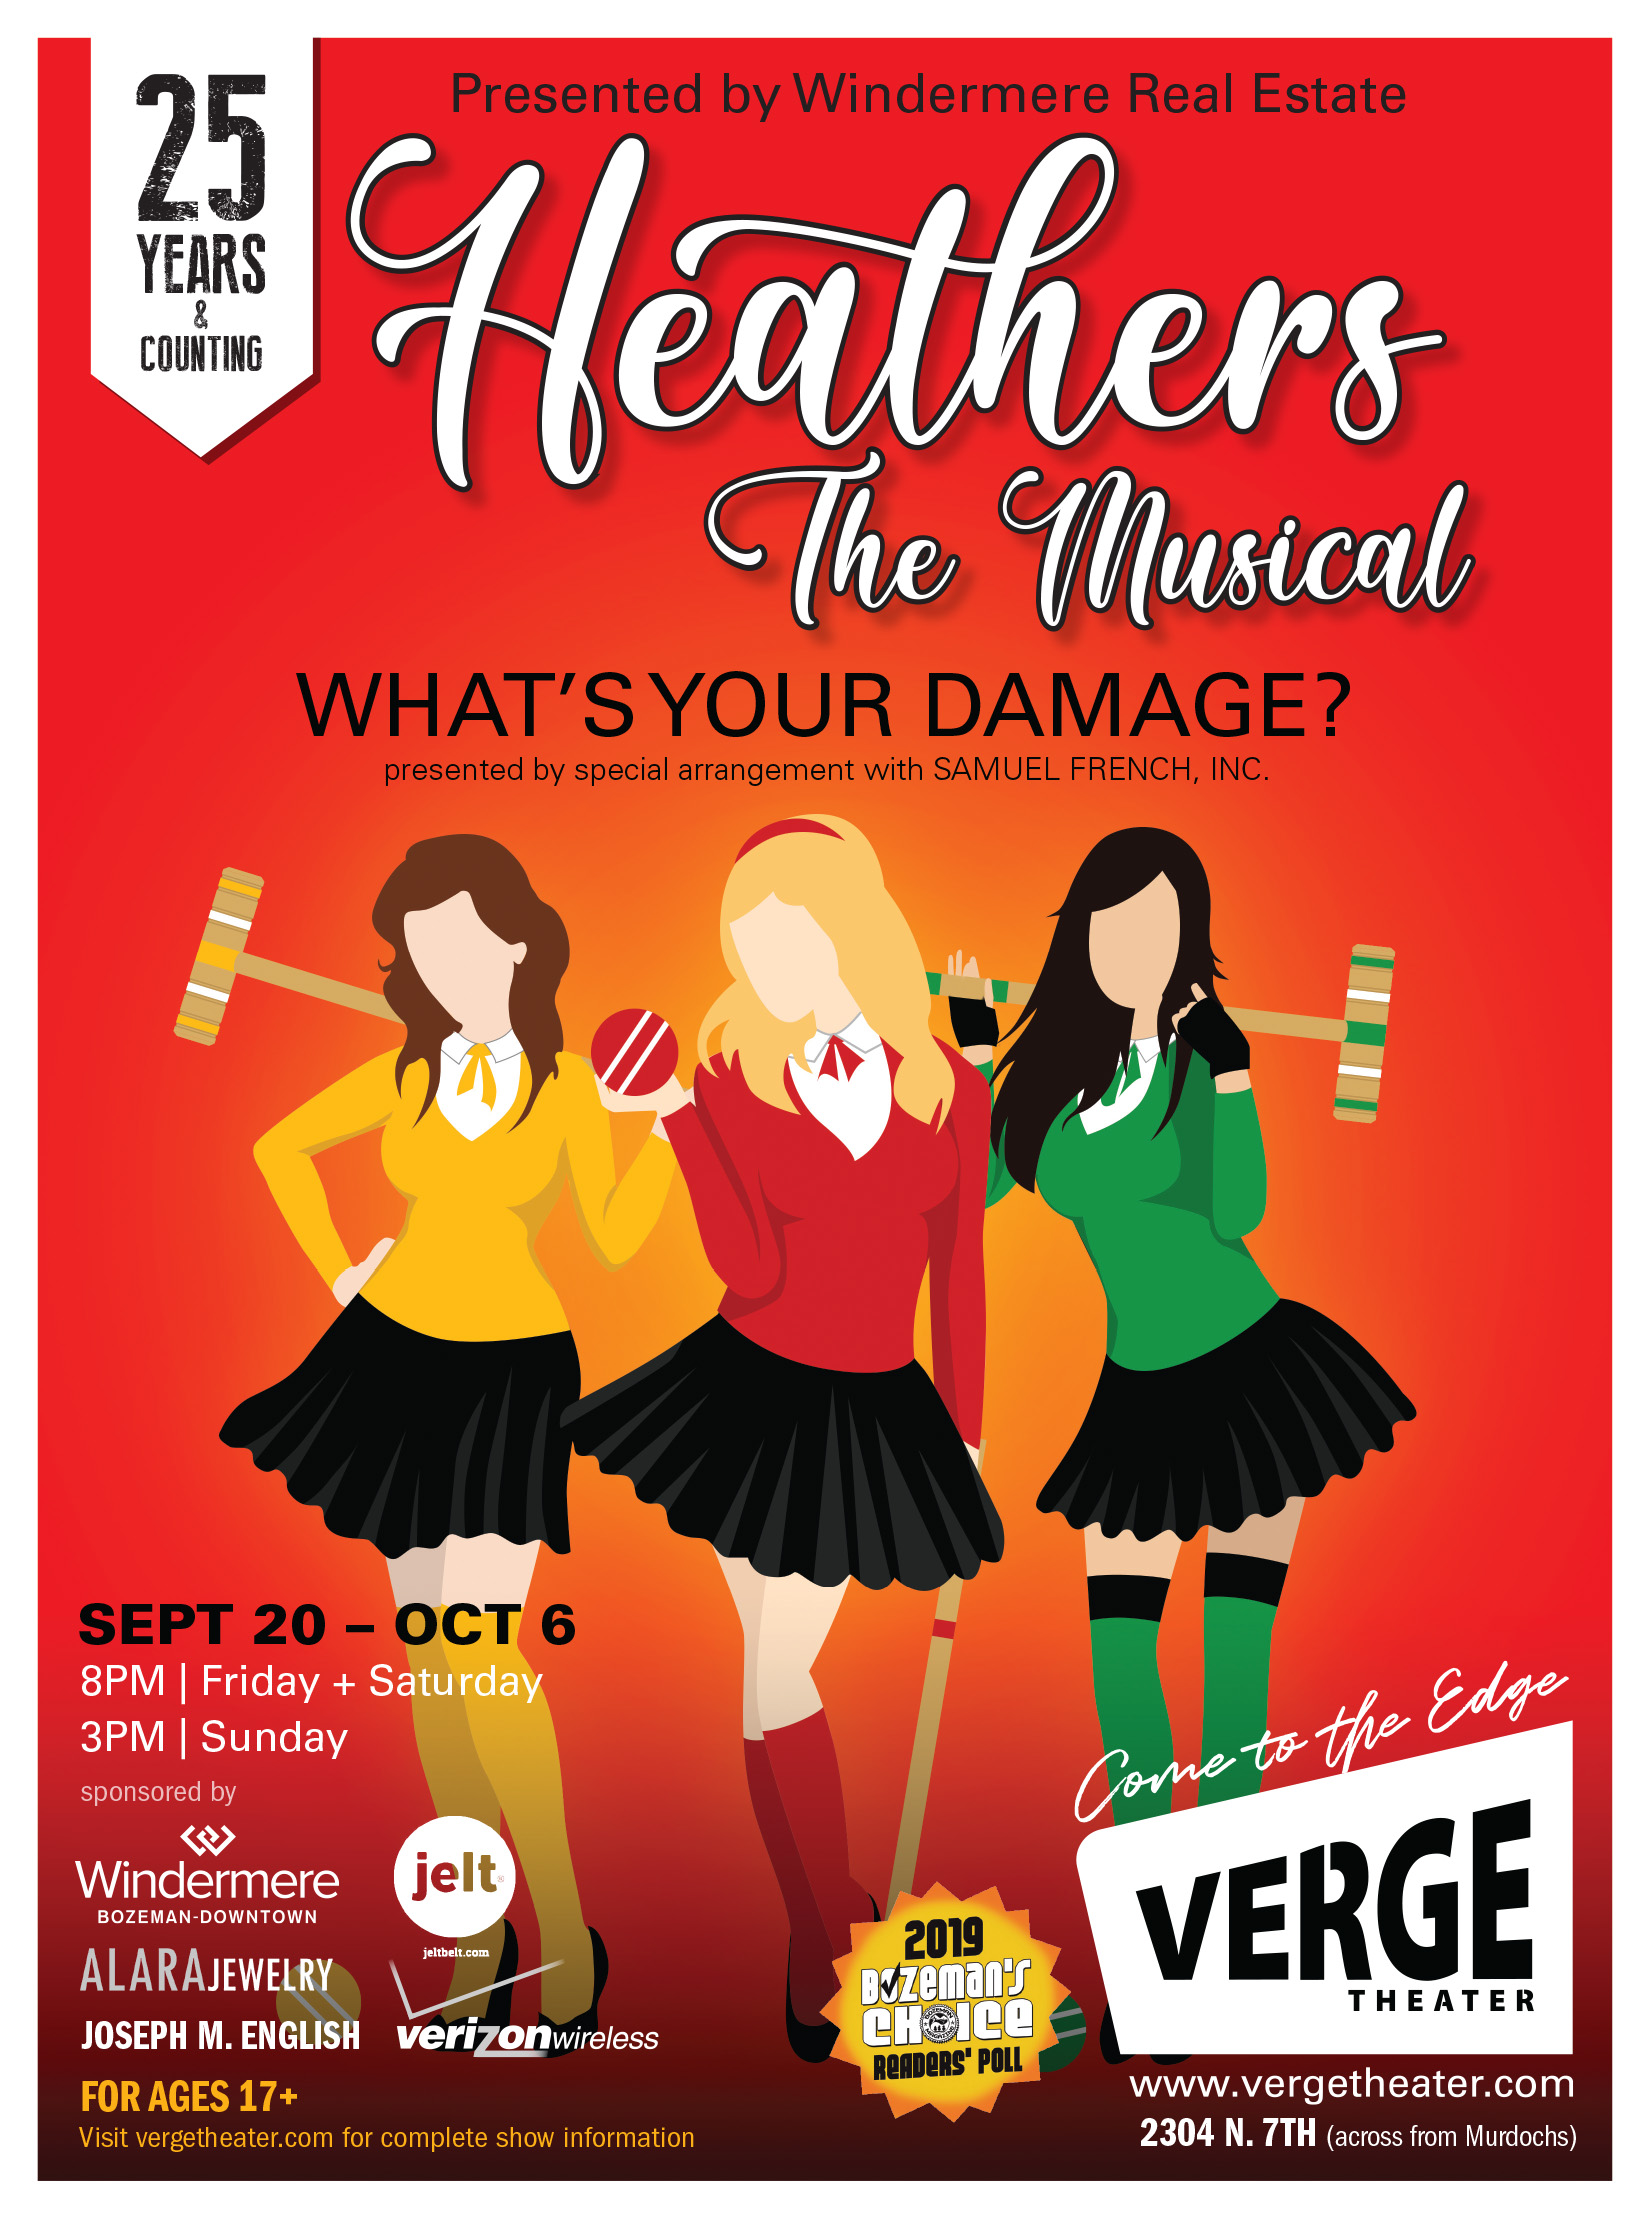 Heathers The Musial Poster 11x17 for website.jpg